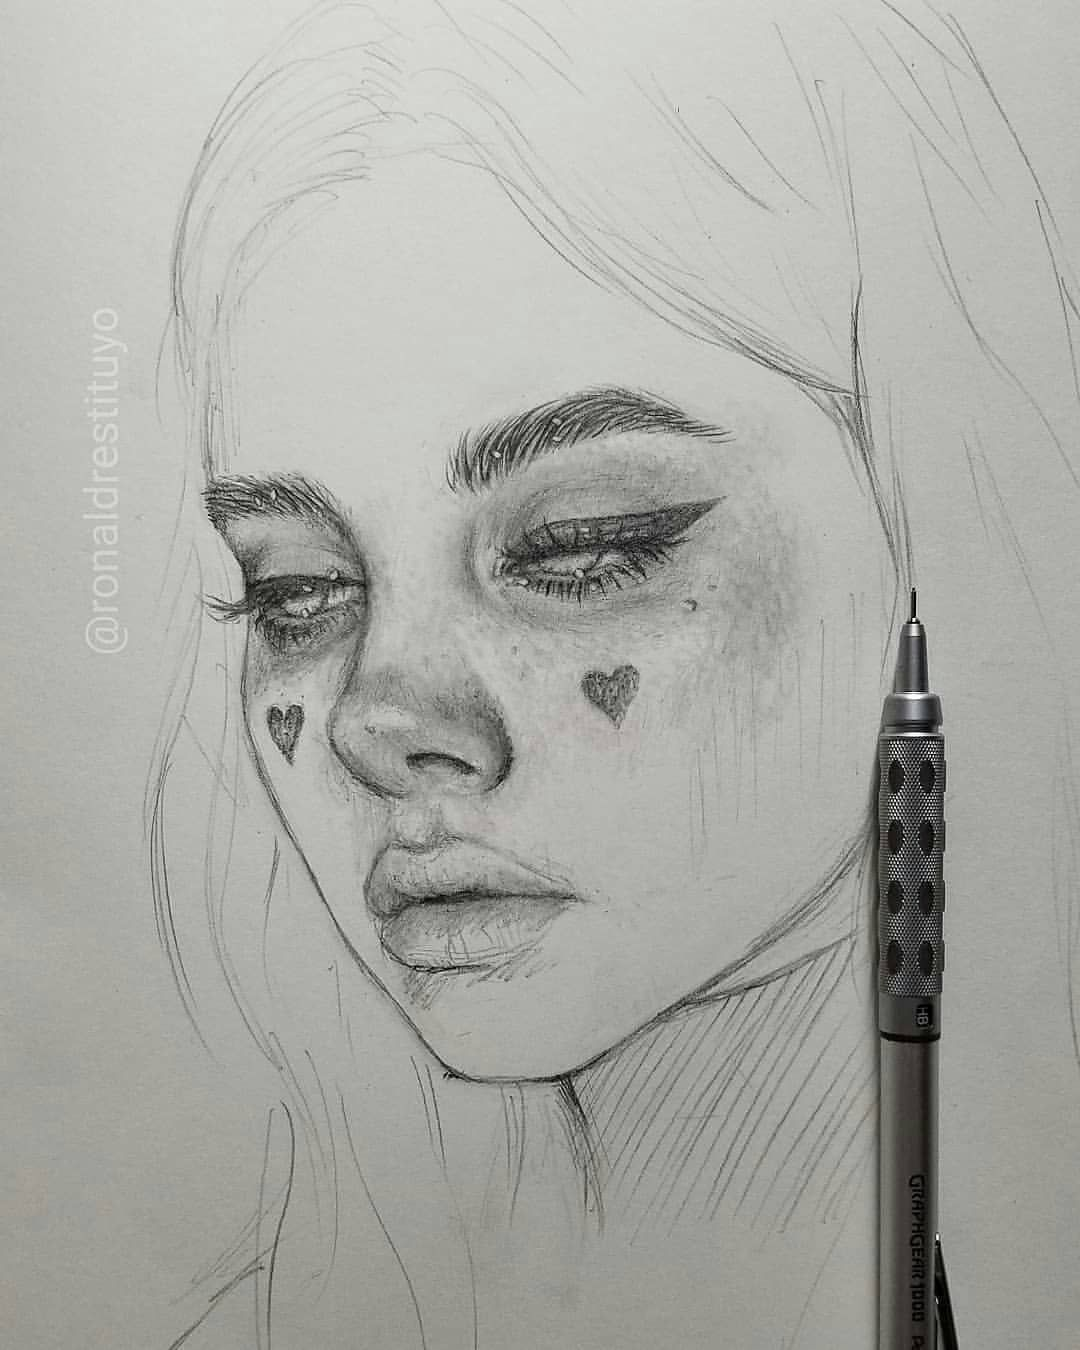 "✏DAILY DOSE OF SKETCHING🖌 on Instagram: ""Step by step Follow @sketch_dailydose for more art and use our hashtag #sketch_dailydose for a chance to be featured! Art by…""#art #asketch #chance #daily #dailydose #dose #featured #follow #hashtag #instagram #sketchdailydose #sketching #step"